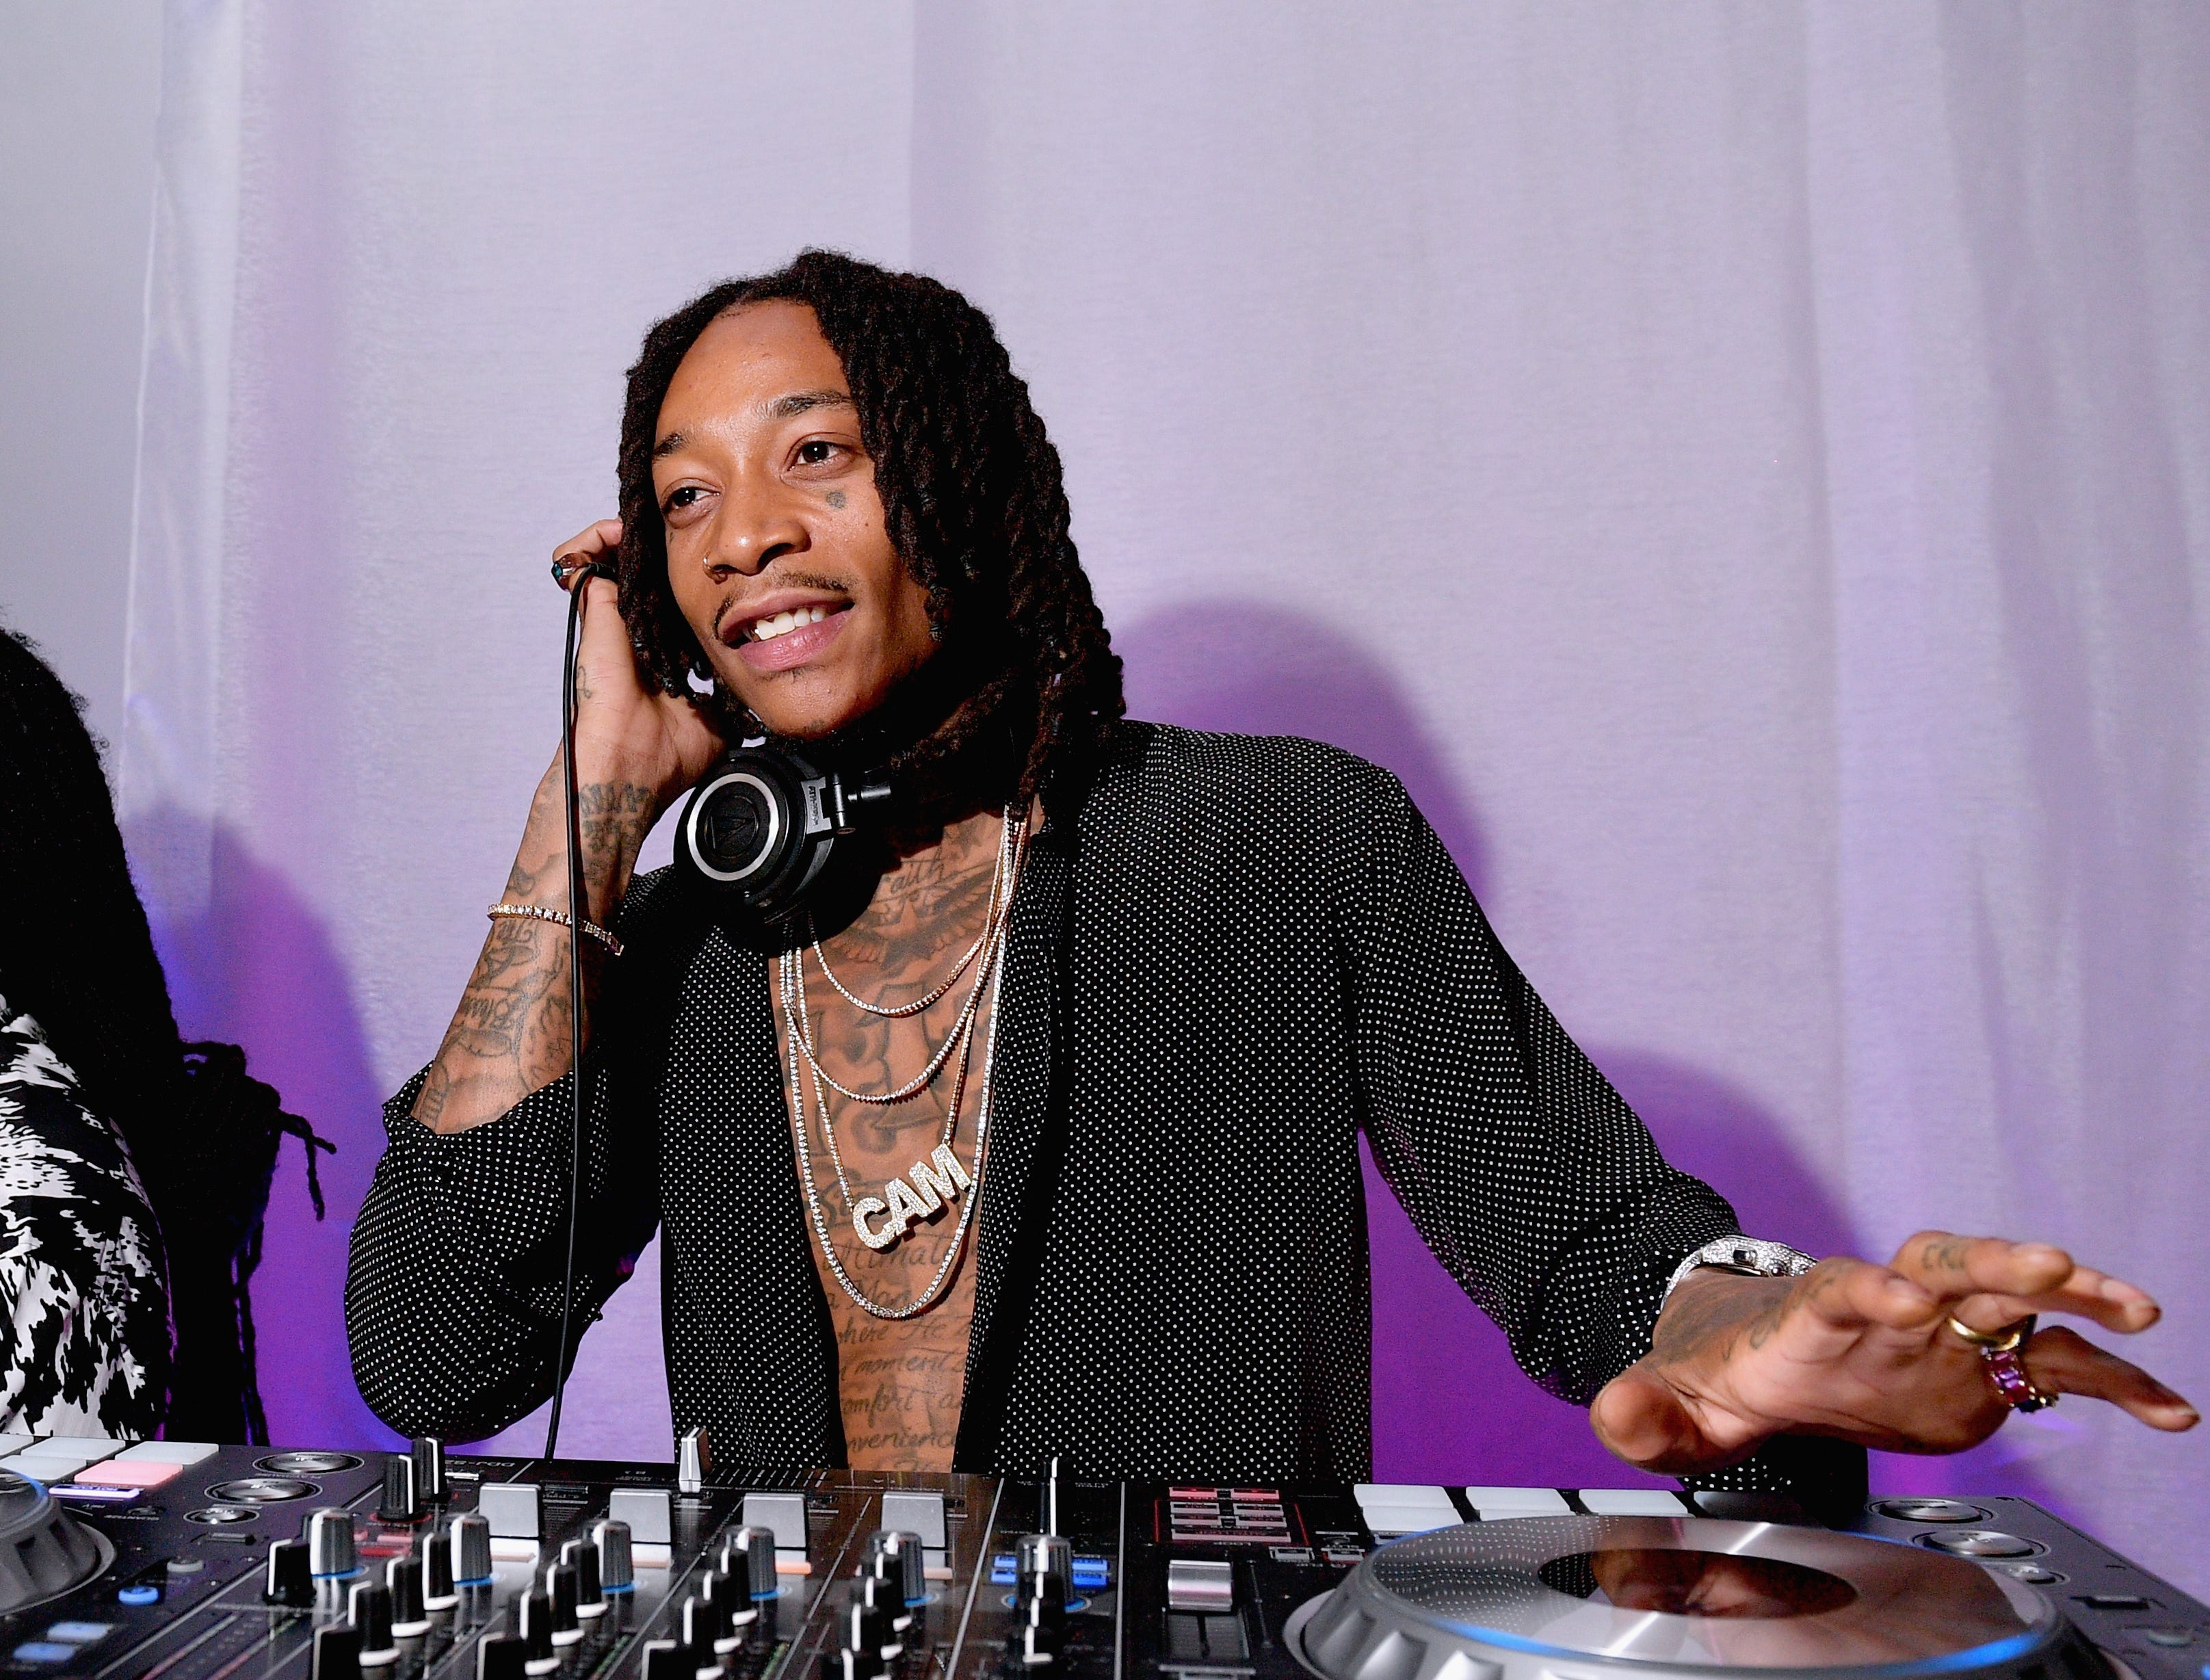 CULVER CITY, CA - NOVEMBER 10:  Wiz Khalifa DJs during the 2018 Baby2Baby Gala Presented by Paul Mitchell at 3LABS on November 10, 2018 in Culver City, California.  (Photo by Matt Winkelmeyer/Getty Images for Baby2Baby) ORG XMIT: 775231180 ORIG FILE ID: 1060136922